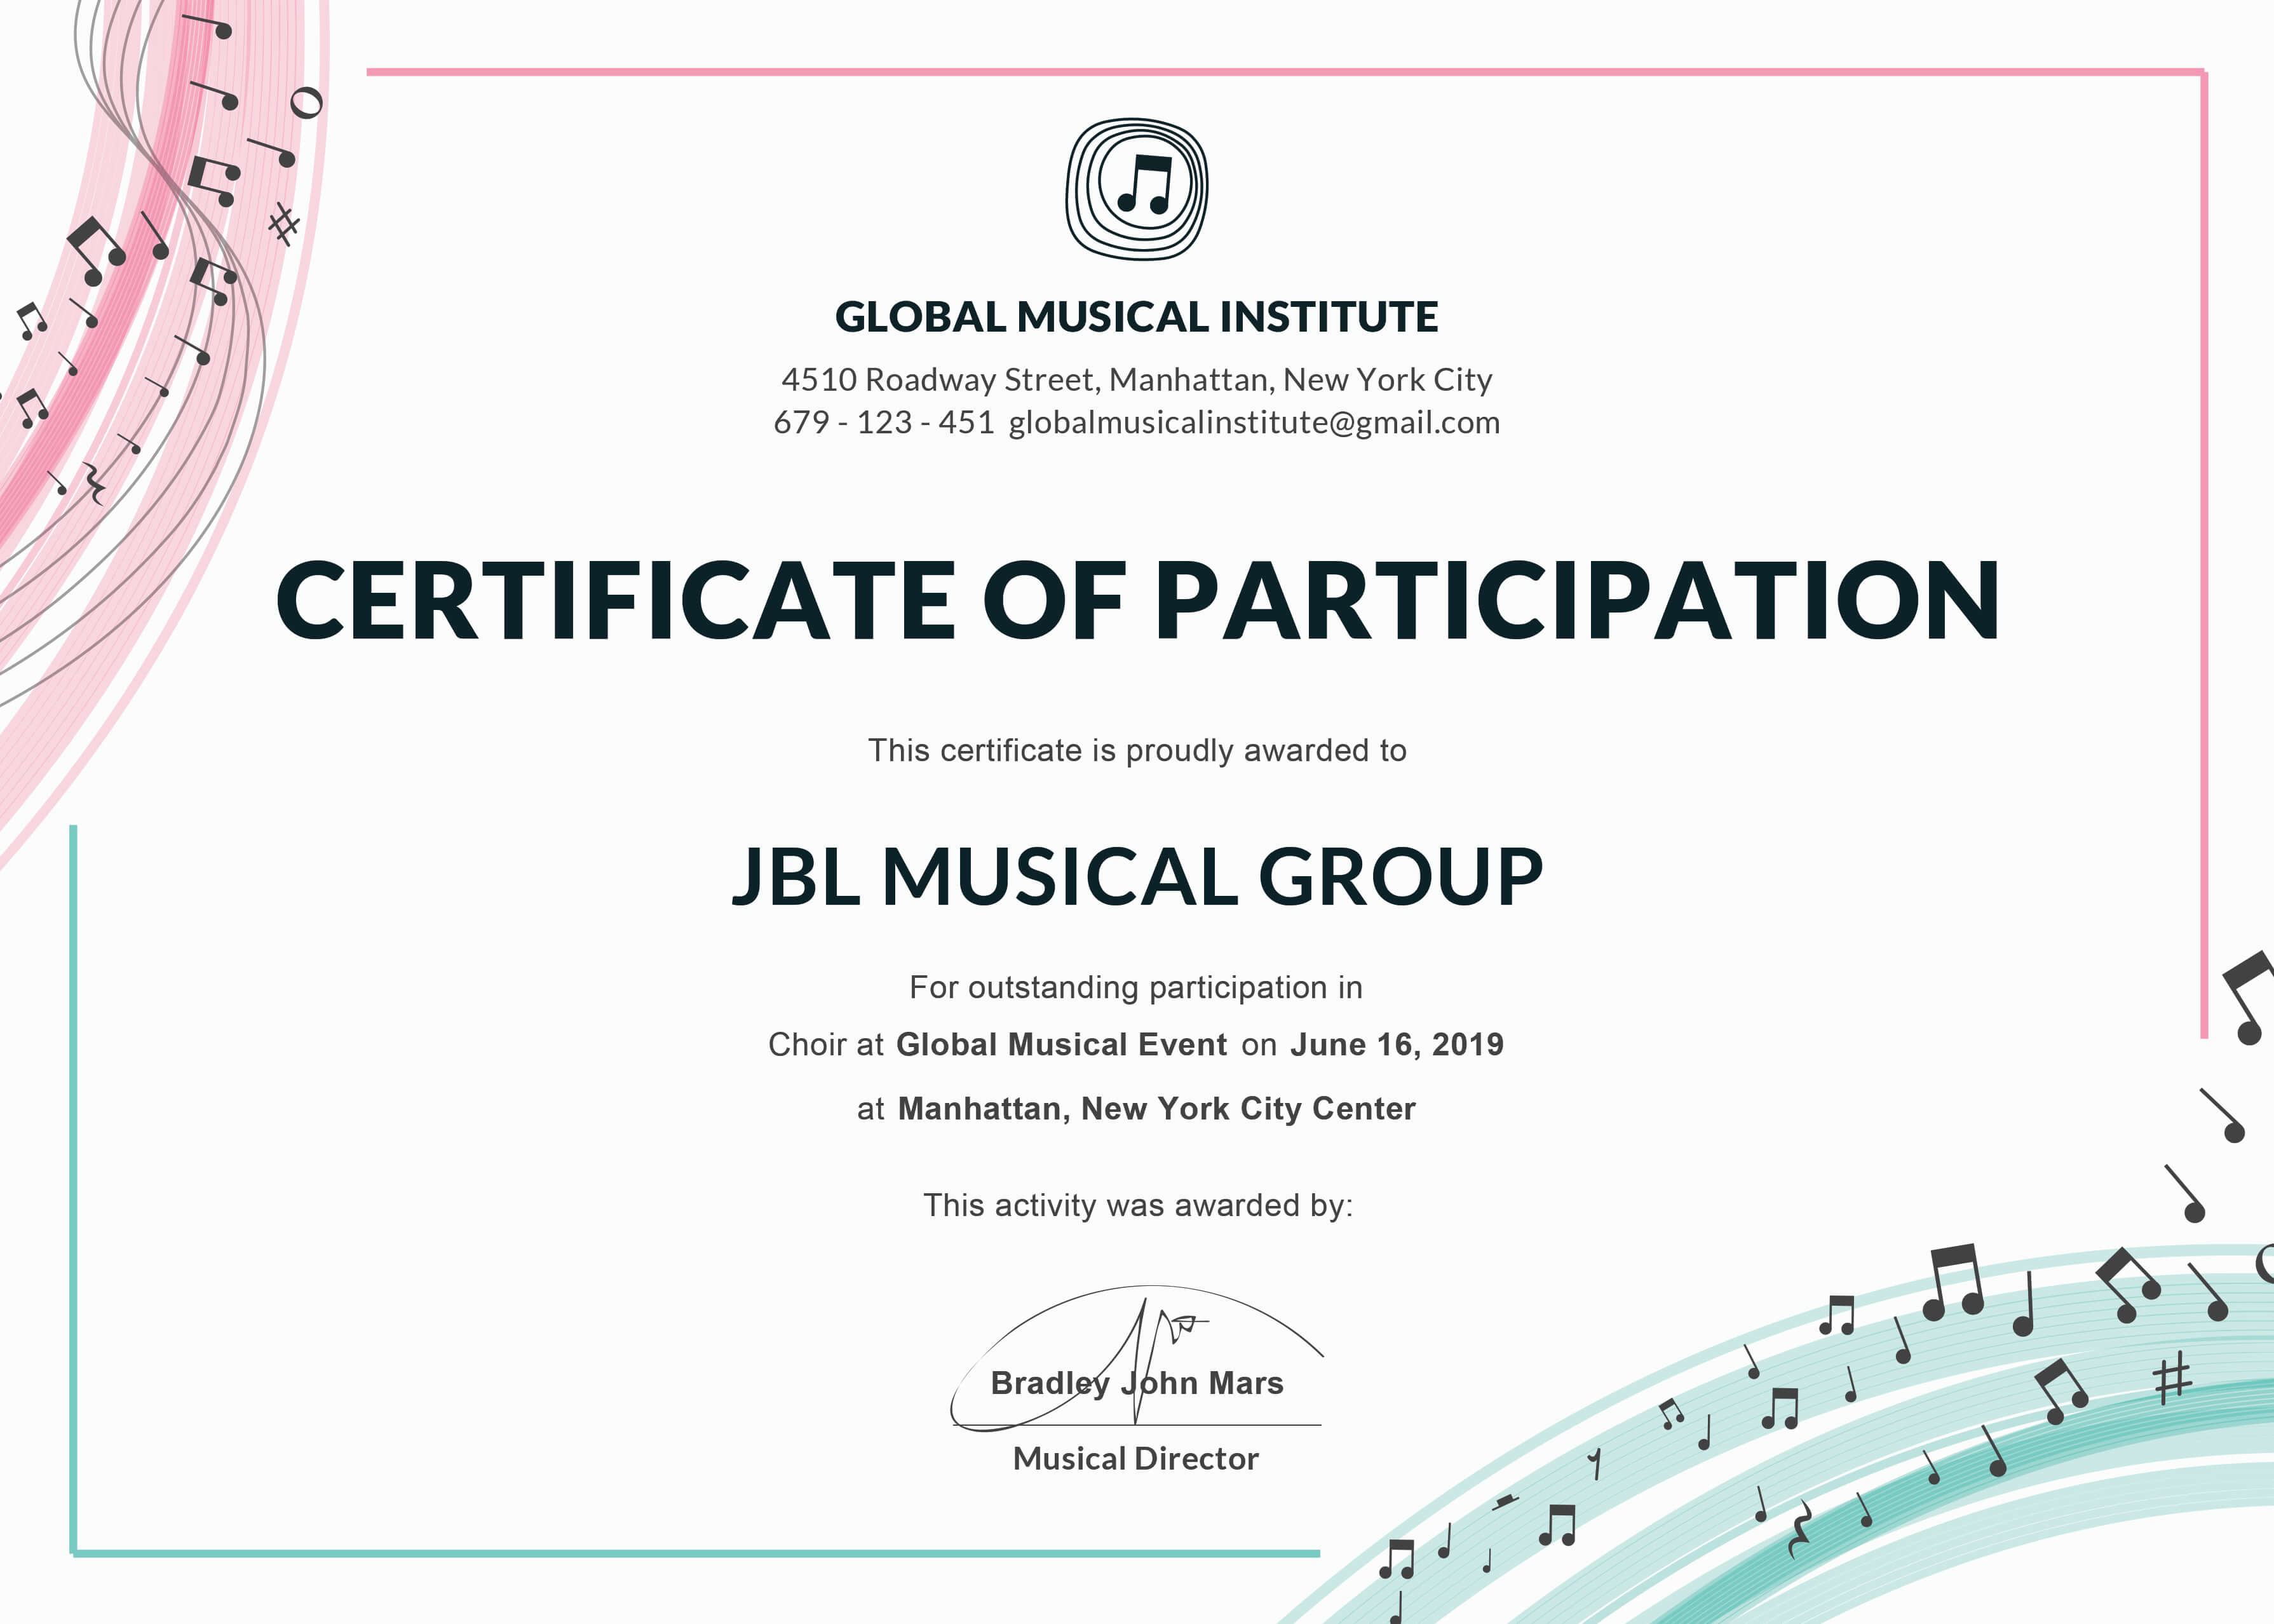 Certificate Of Participation Template Or Word Doc With Docx inside Templates For Certificates Of Participation